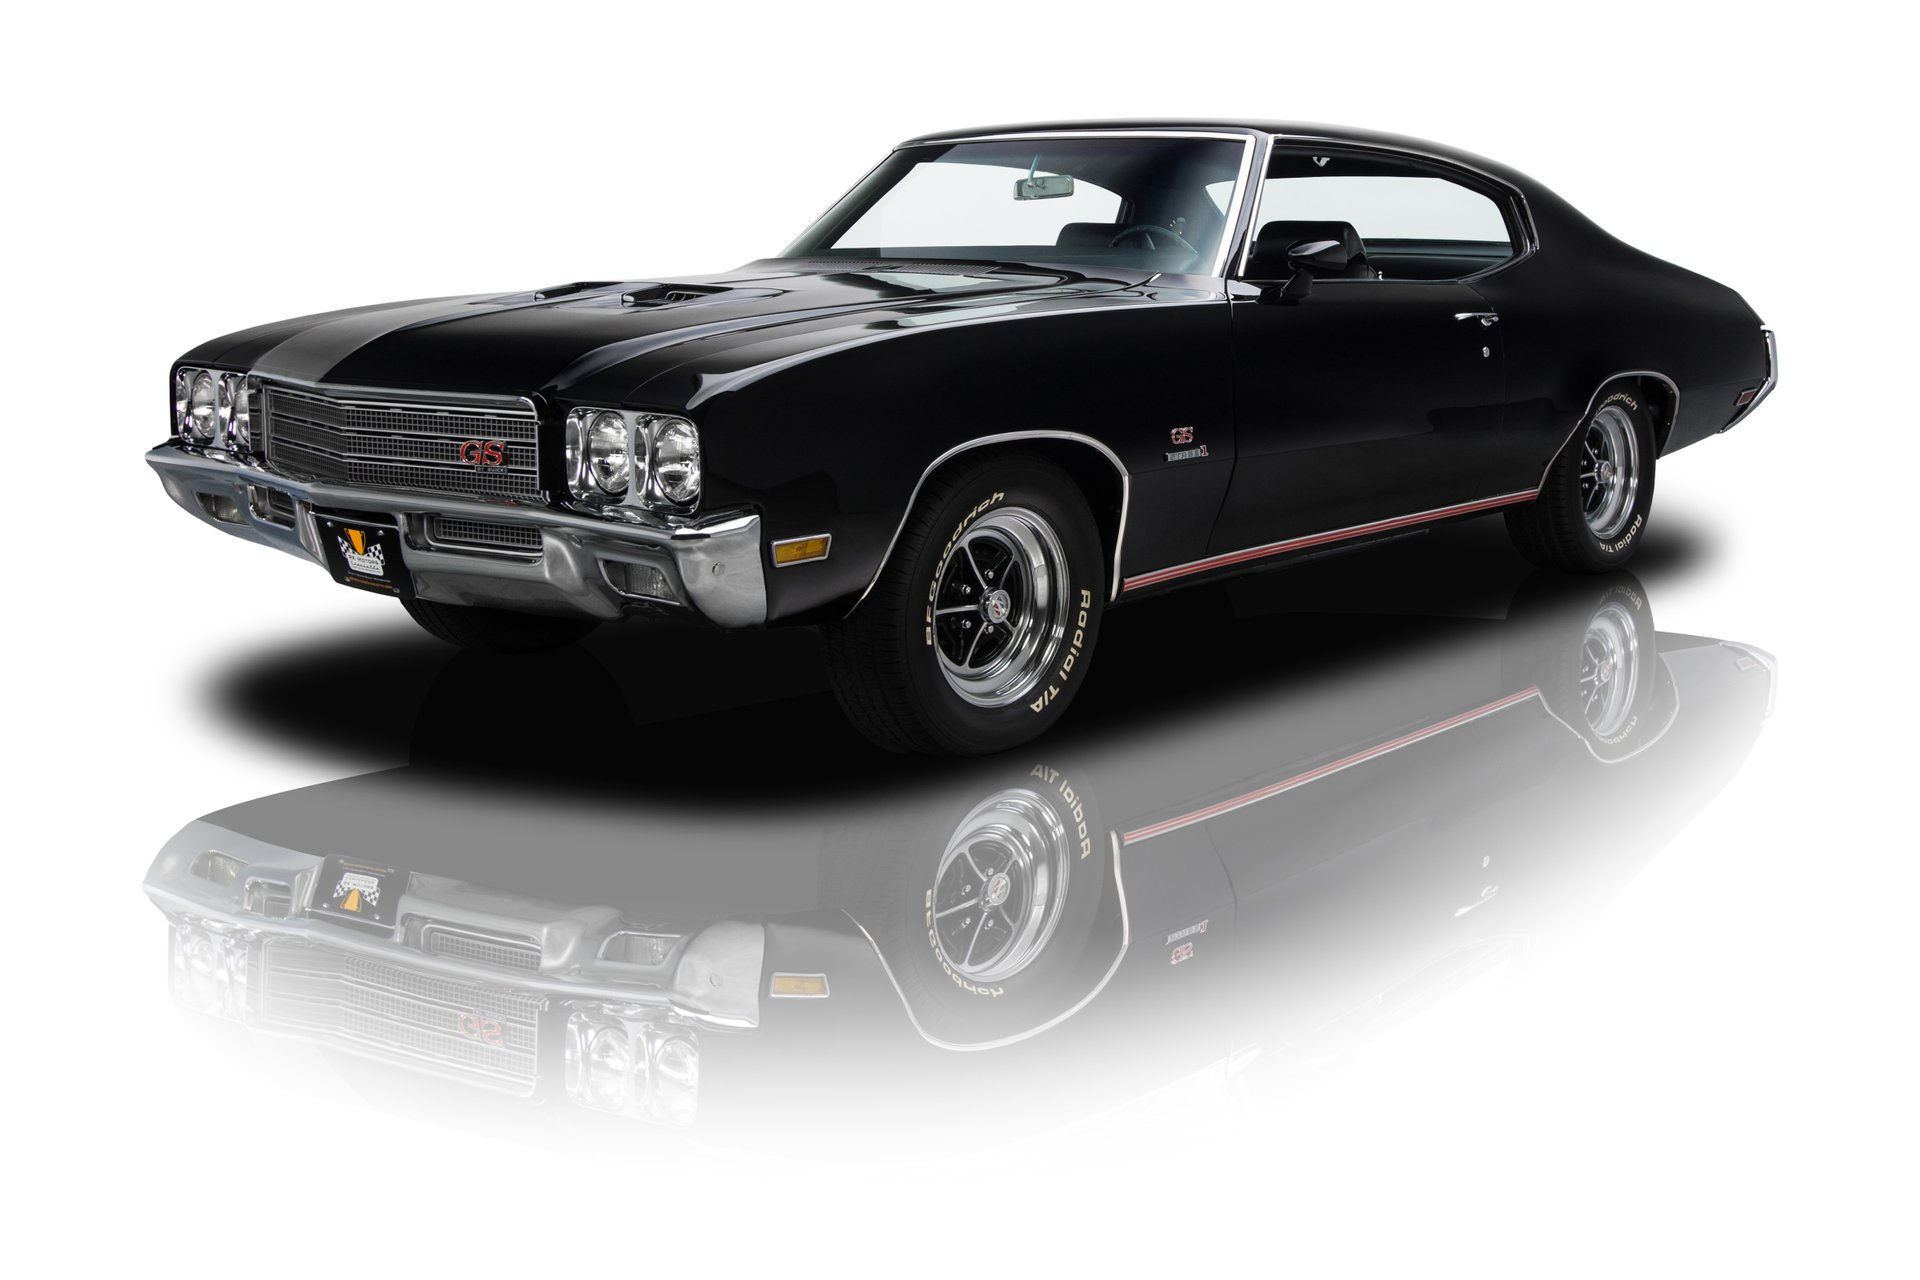 1971 buick gs455 stage 1